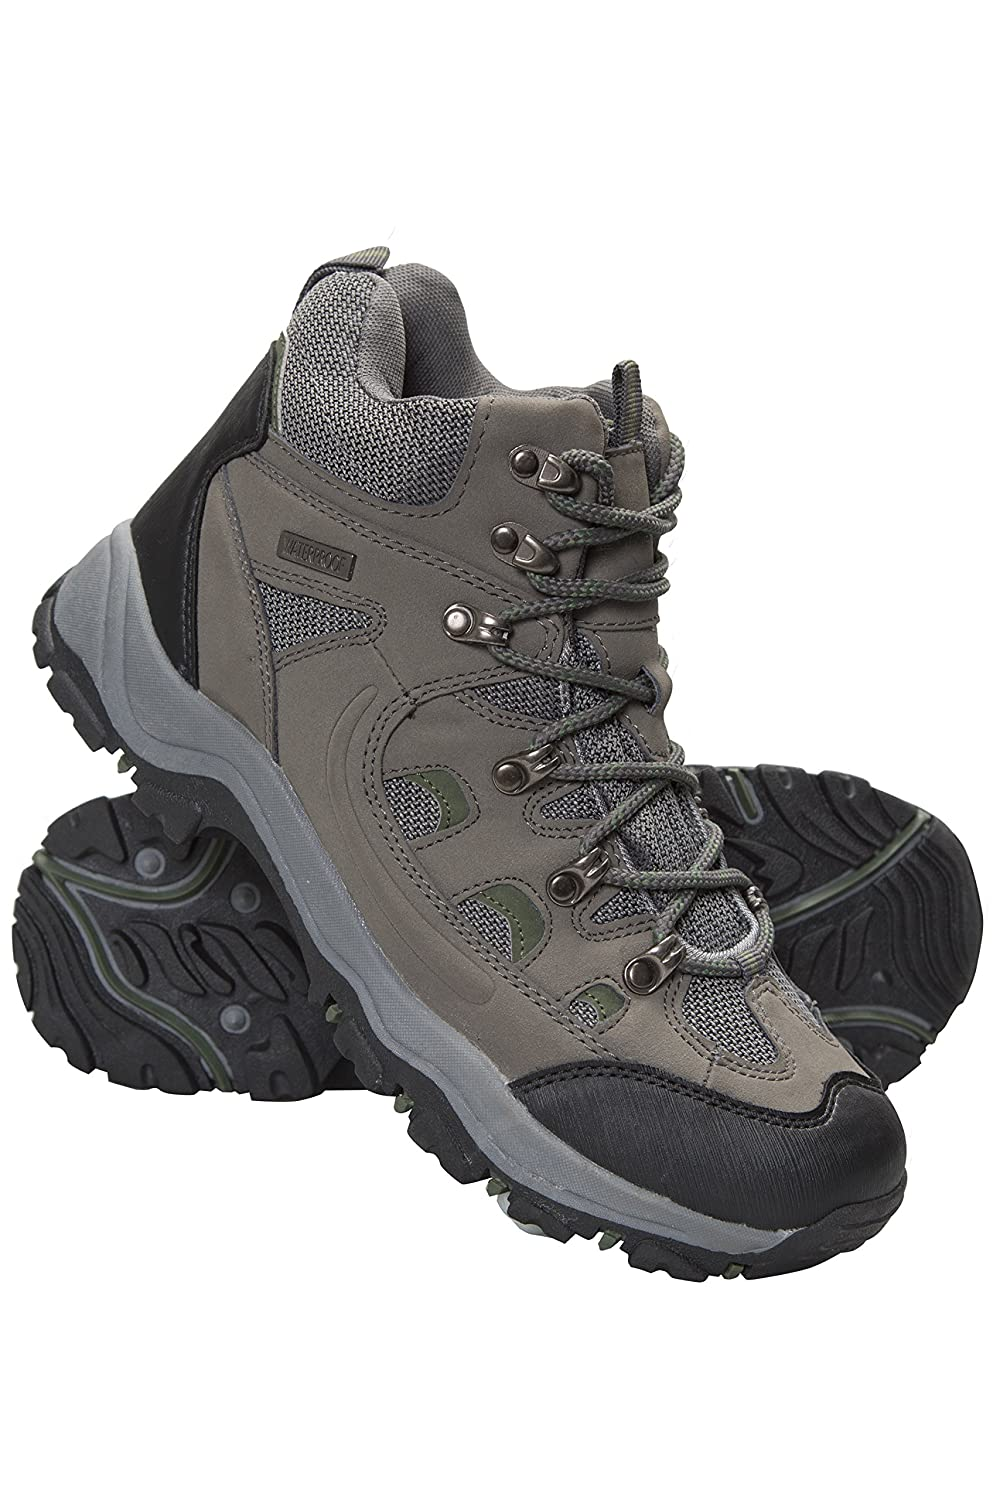 f5e1aa6fbea Mountain Warehouse Adventurer Mens Boots - Waterproof Rain Boots, Synthetic  & Textile Walking Shoes, Added Grip Mens All Season Shoes - Footwear for ...